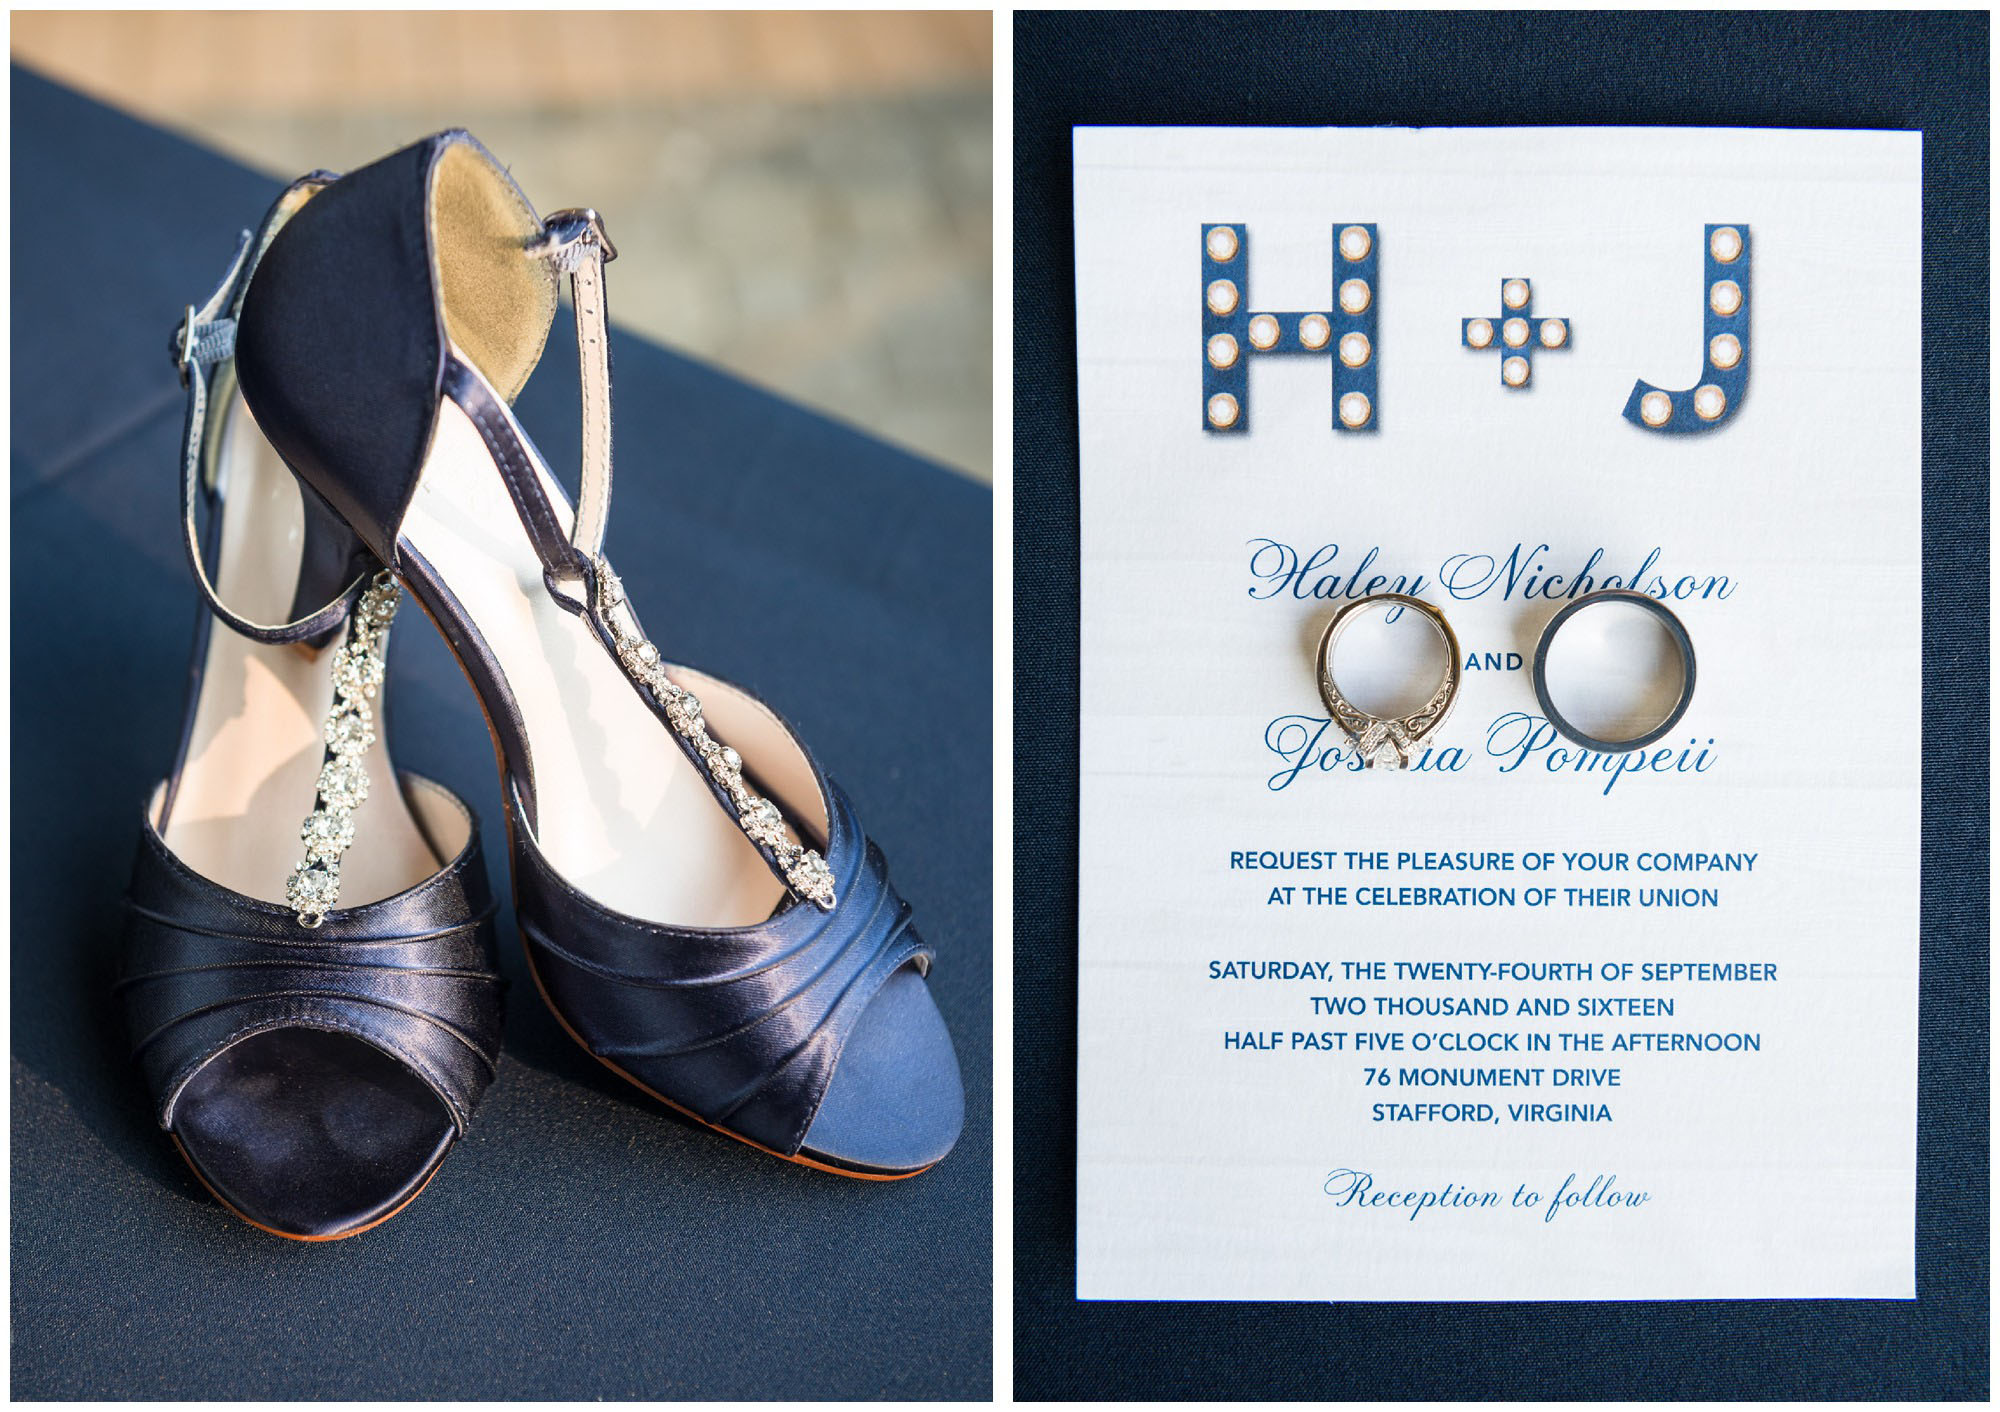 blue bride's shoes and invitation with wedding rings